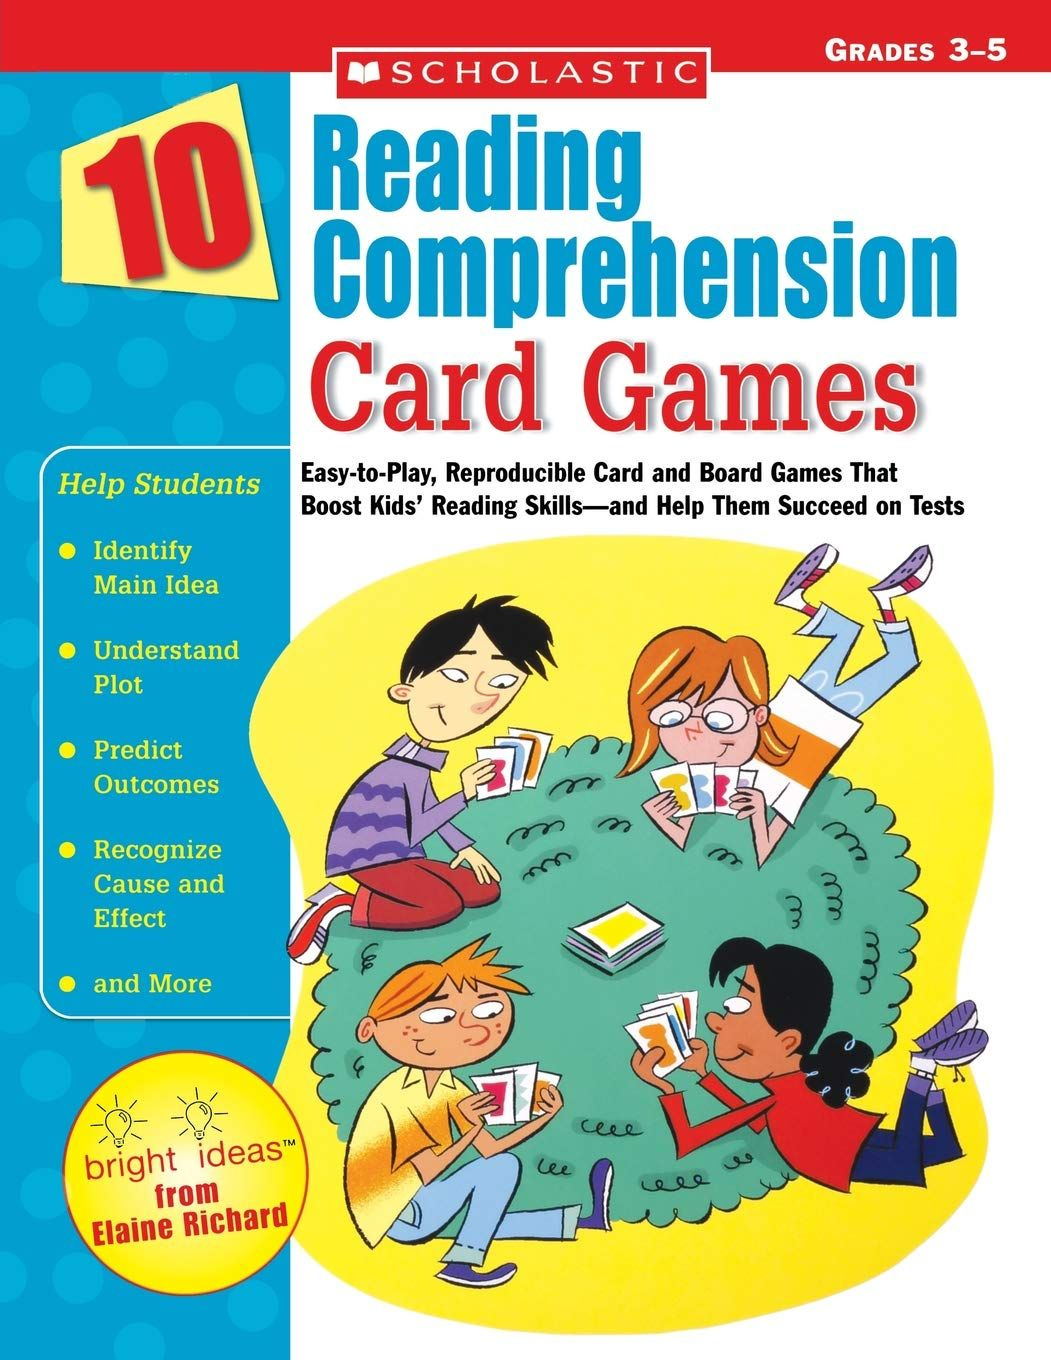 Free 10 Reading Comprehension Card Games By Scholastic Reading Comprehension Reading Skills Kids Reading [ 1360 x 1051 Pixel ]